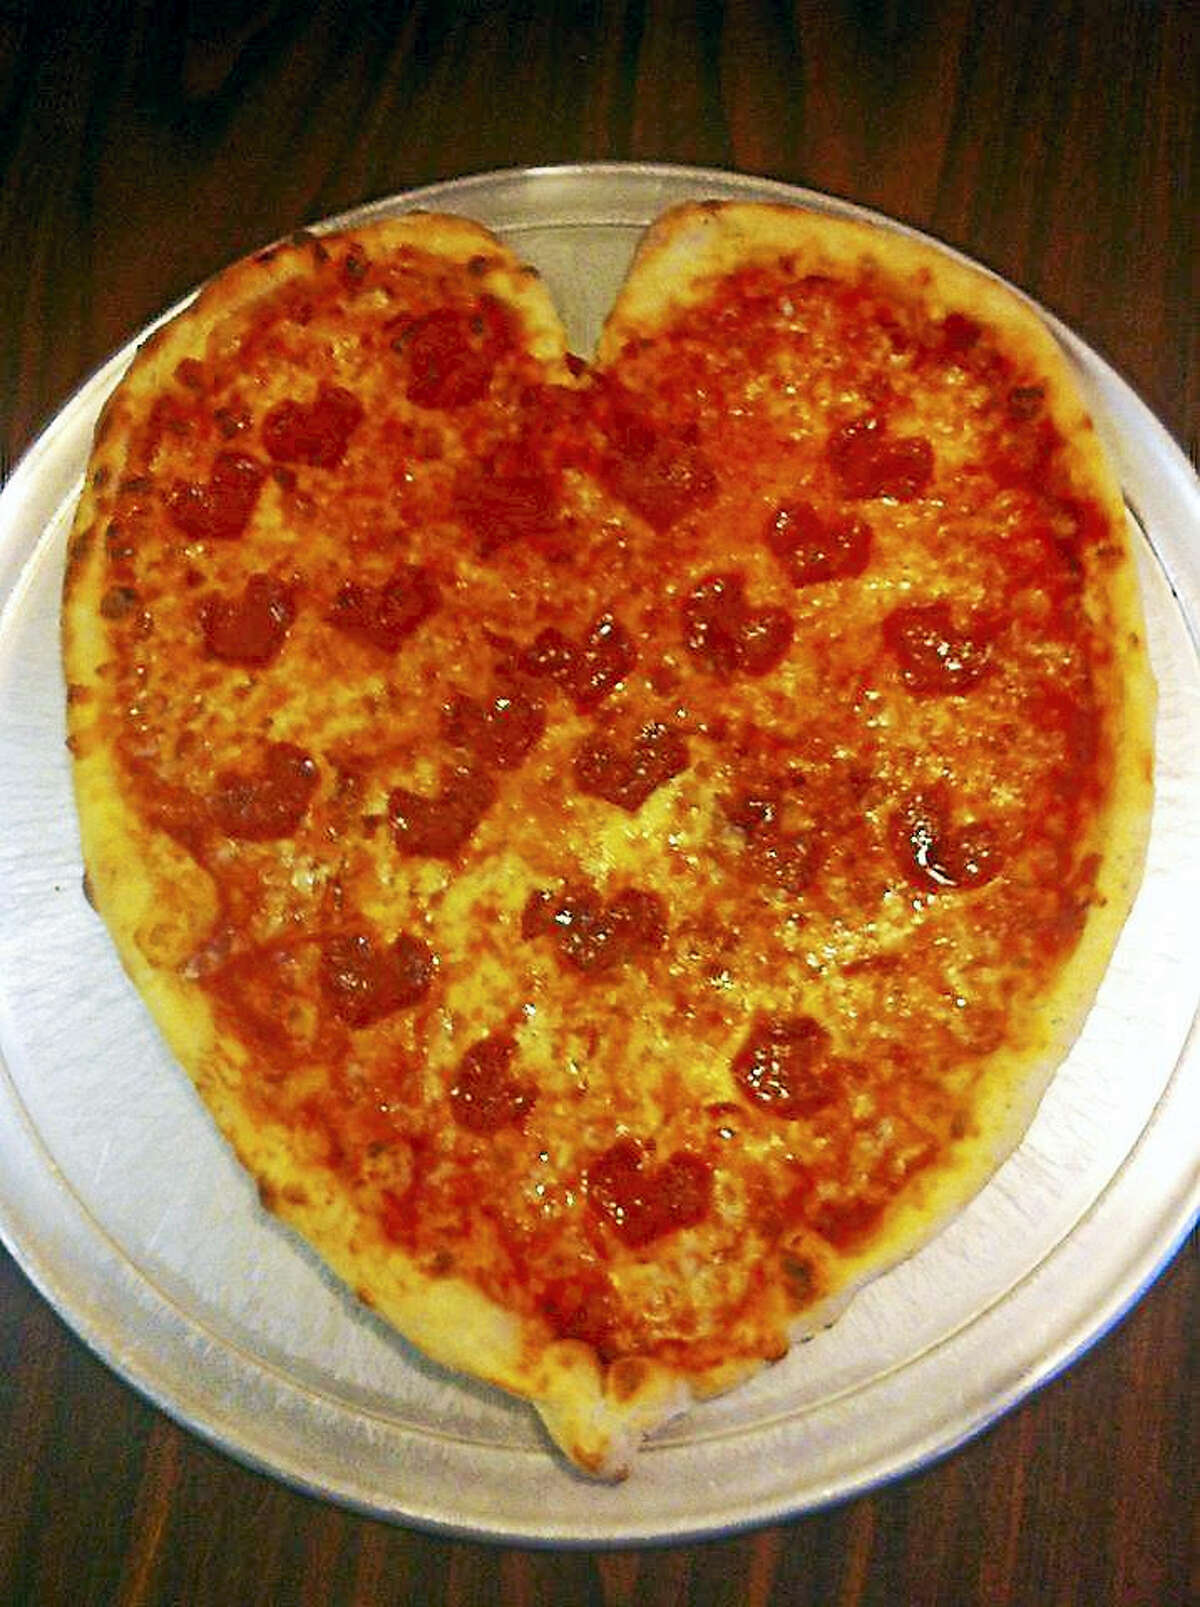 Heart-shaped pizzas and raviolis are on the menu this weekend at Jerry's Pizza and pancakes are for breakfast at Carmela's on the Extension.